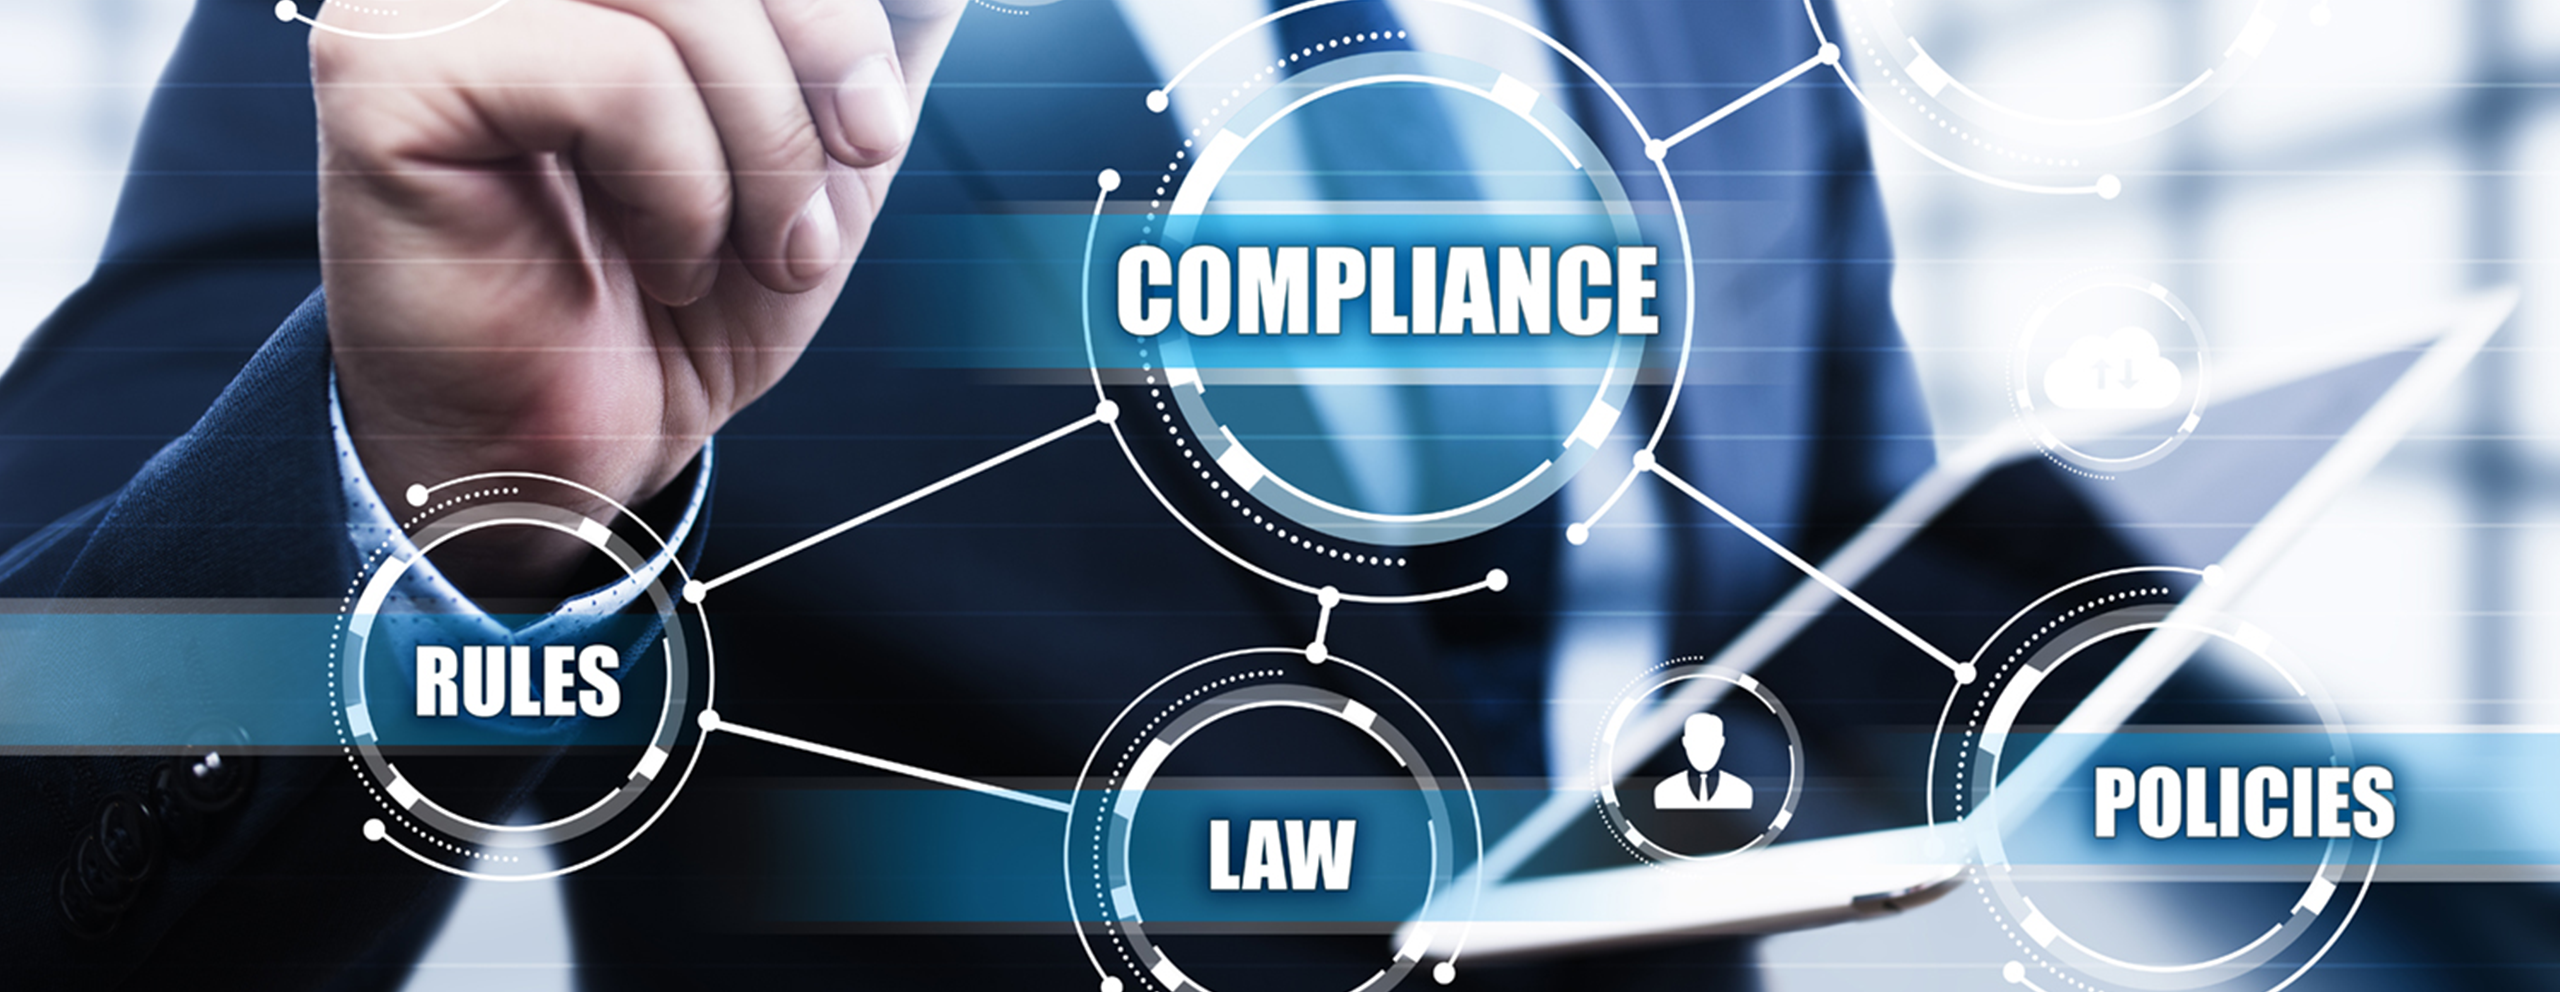 Security Service & Compliance Header Graphic